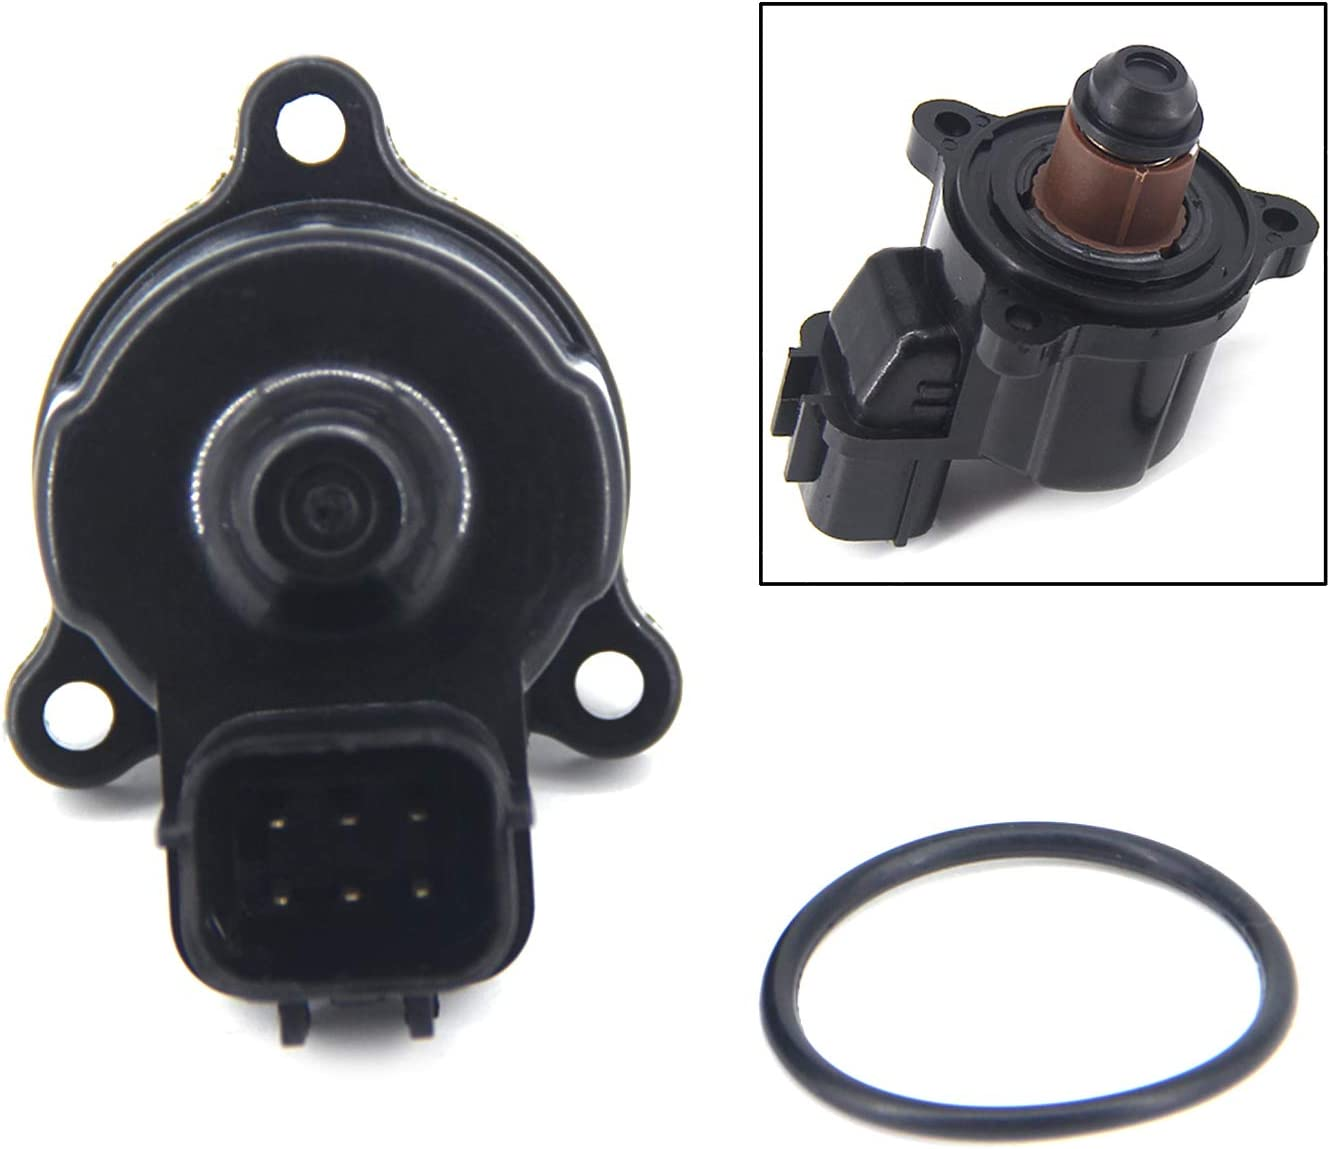 FEXON Idle Air Control Valve Replacement for Chrysler Sebring Dodge Stratus Mitsubishi Eclipse Galant Montero Sport 3.0L 3.5L Replace MD628117 MD628119 MD628174